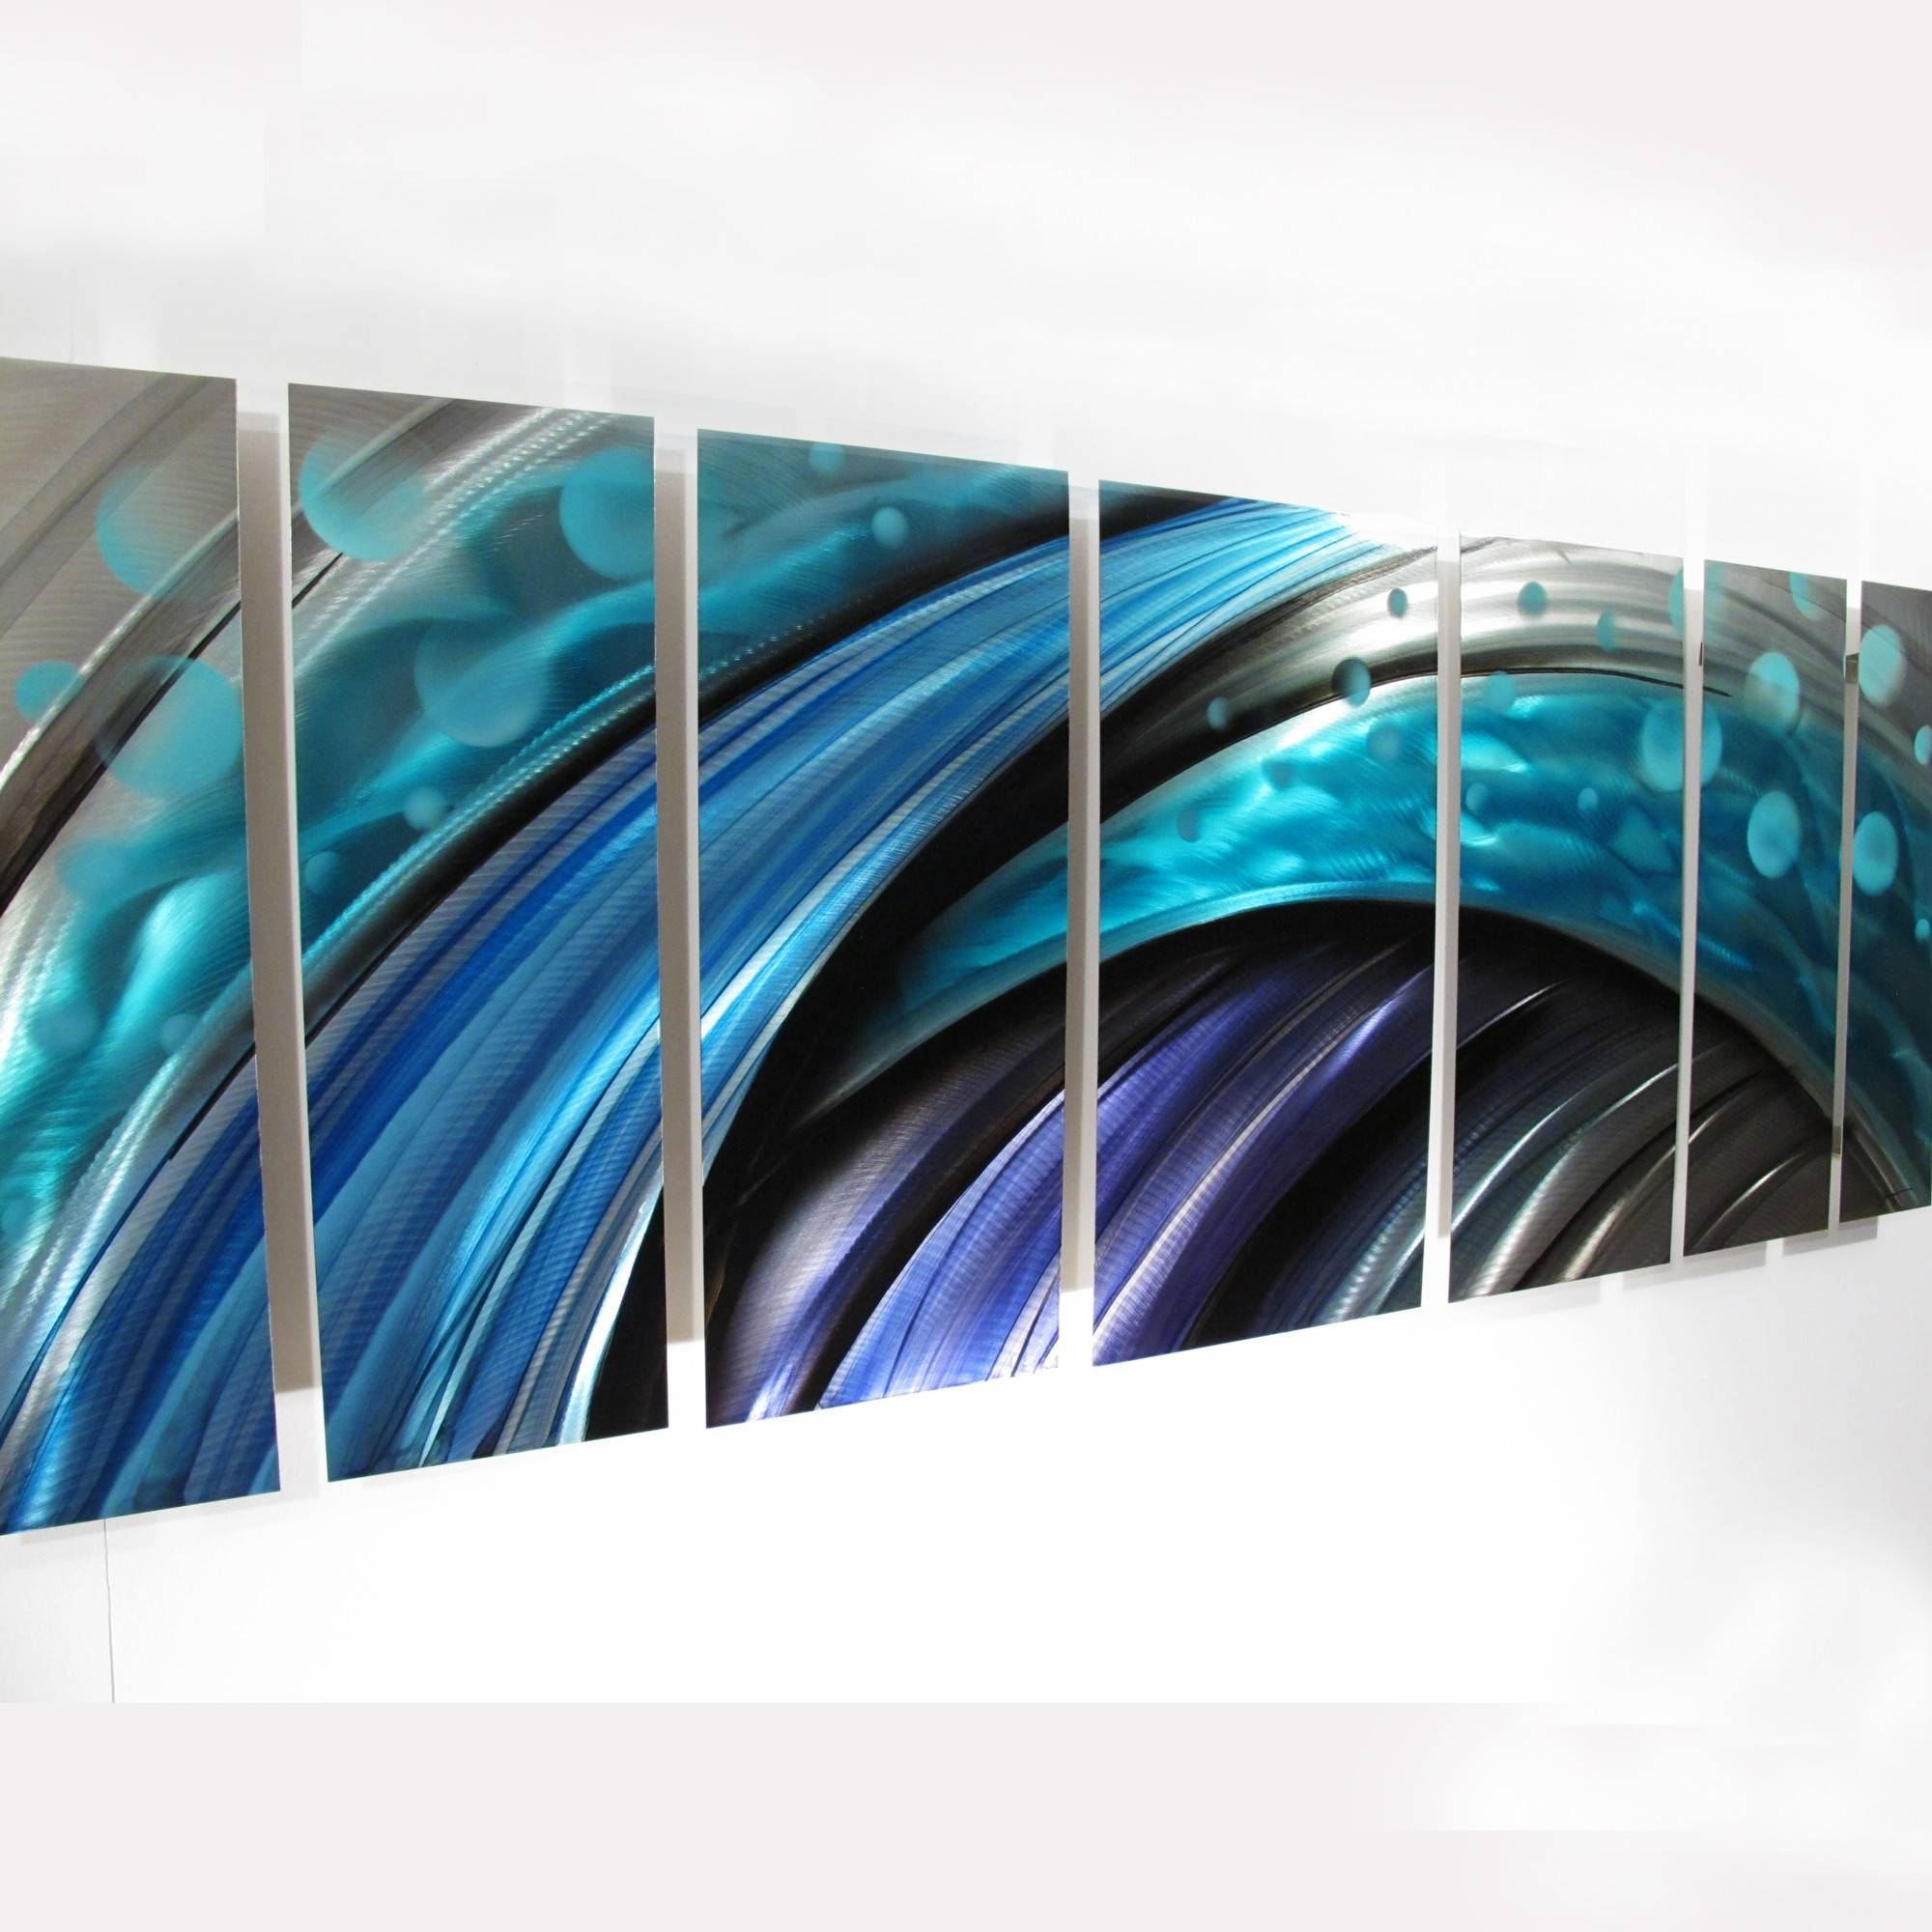 Charming Abstract Metal Wall Sculpture Uk Large Metal Wall Art Within Most Recent Cheap Metal Wall Art (View 6 of 20)